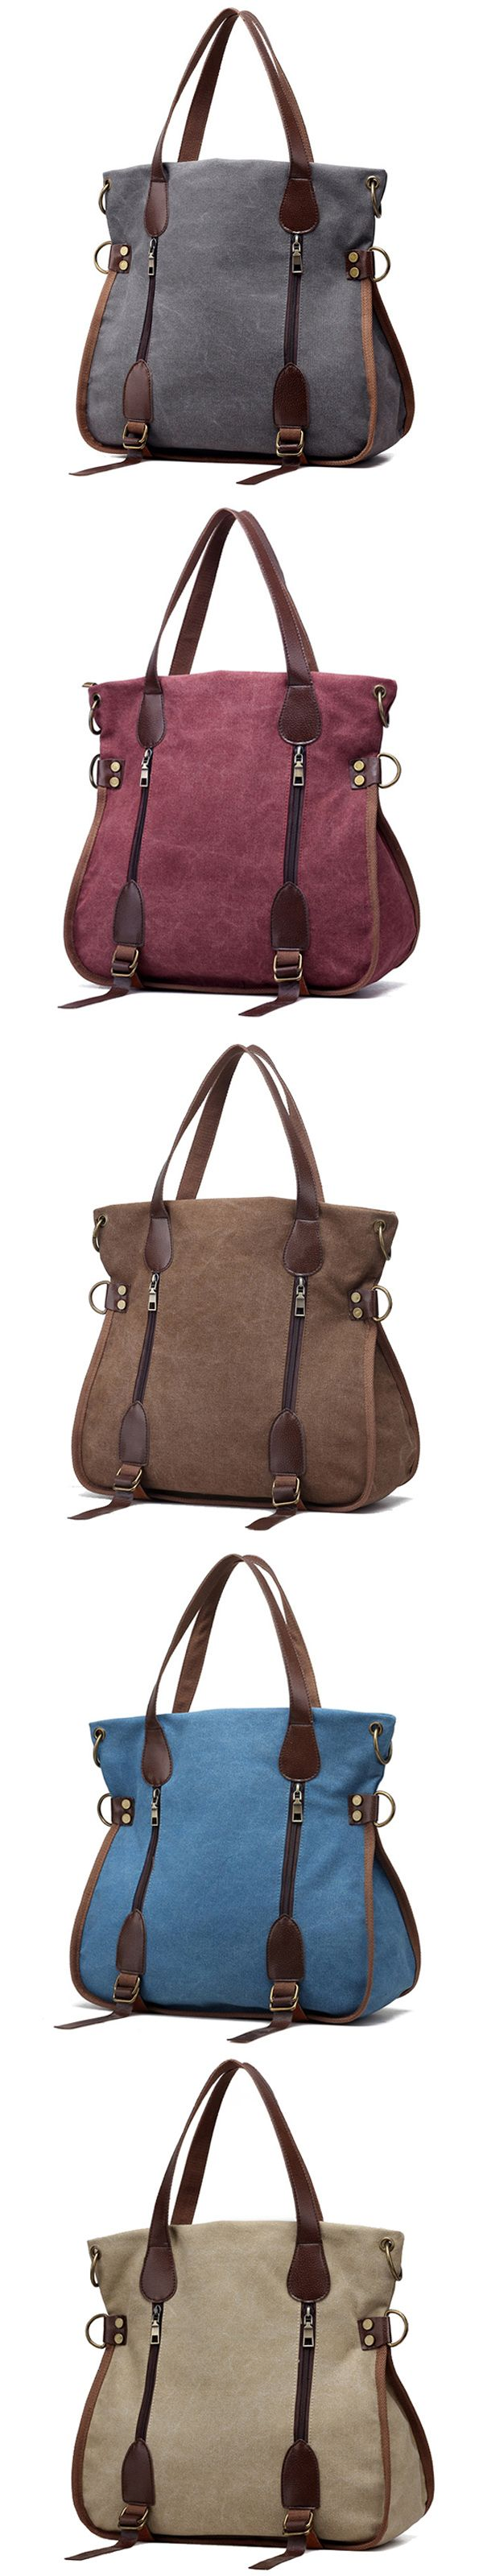 US$22.67  Women Canvas Vintage Handbag Retro Shoulder Bag Schoolbag